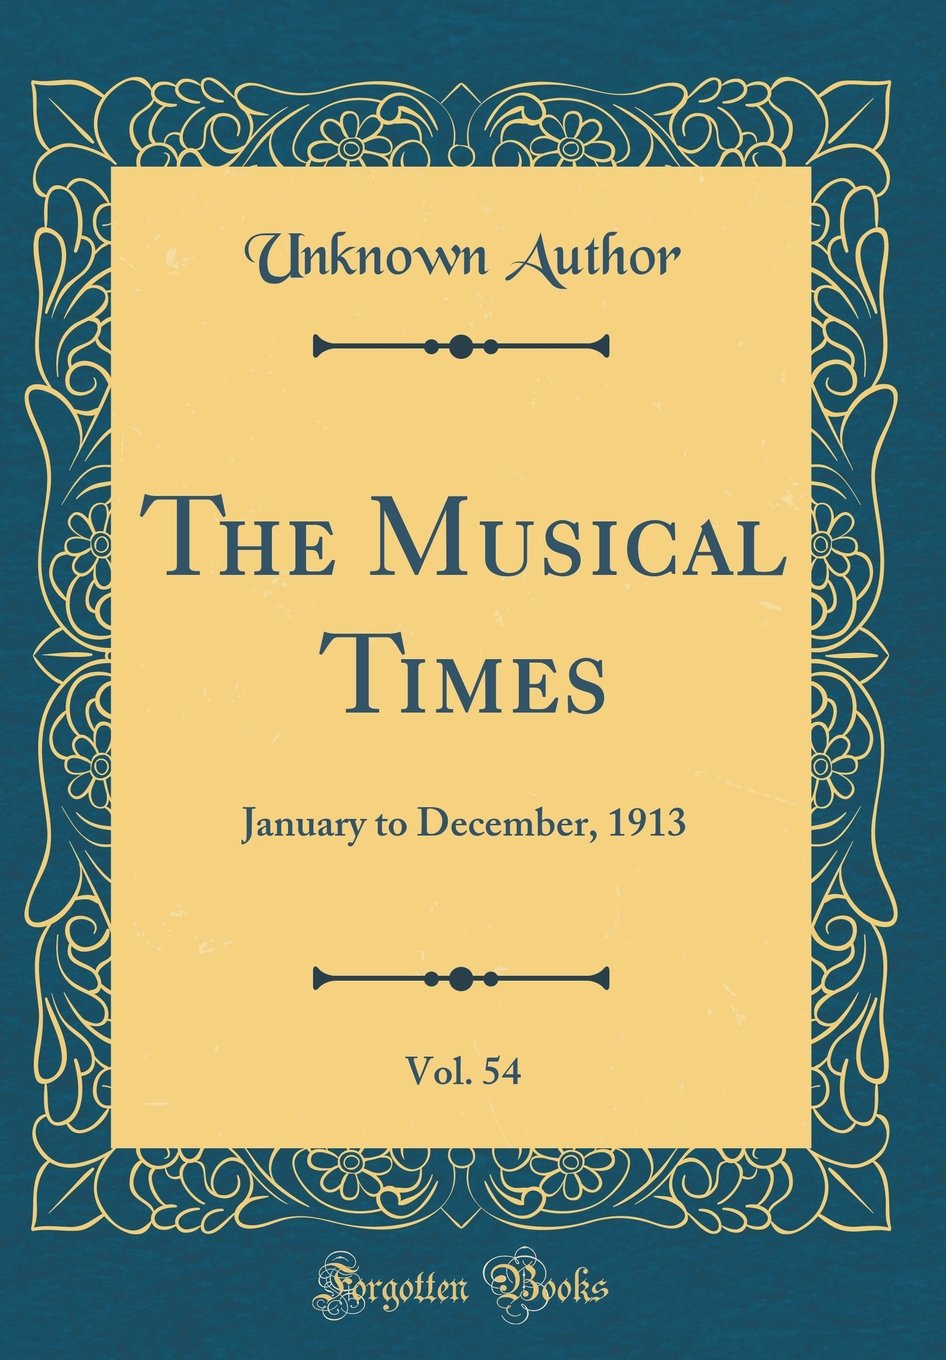 The Musical Times, Vol. 54: January to December, 1913 (Classic Reprint) ebook